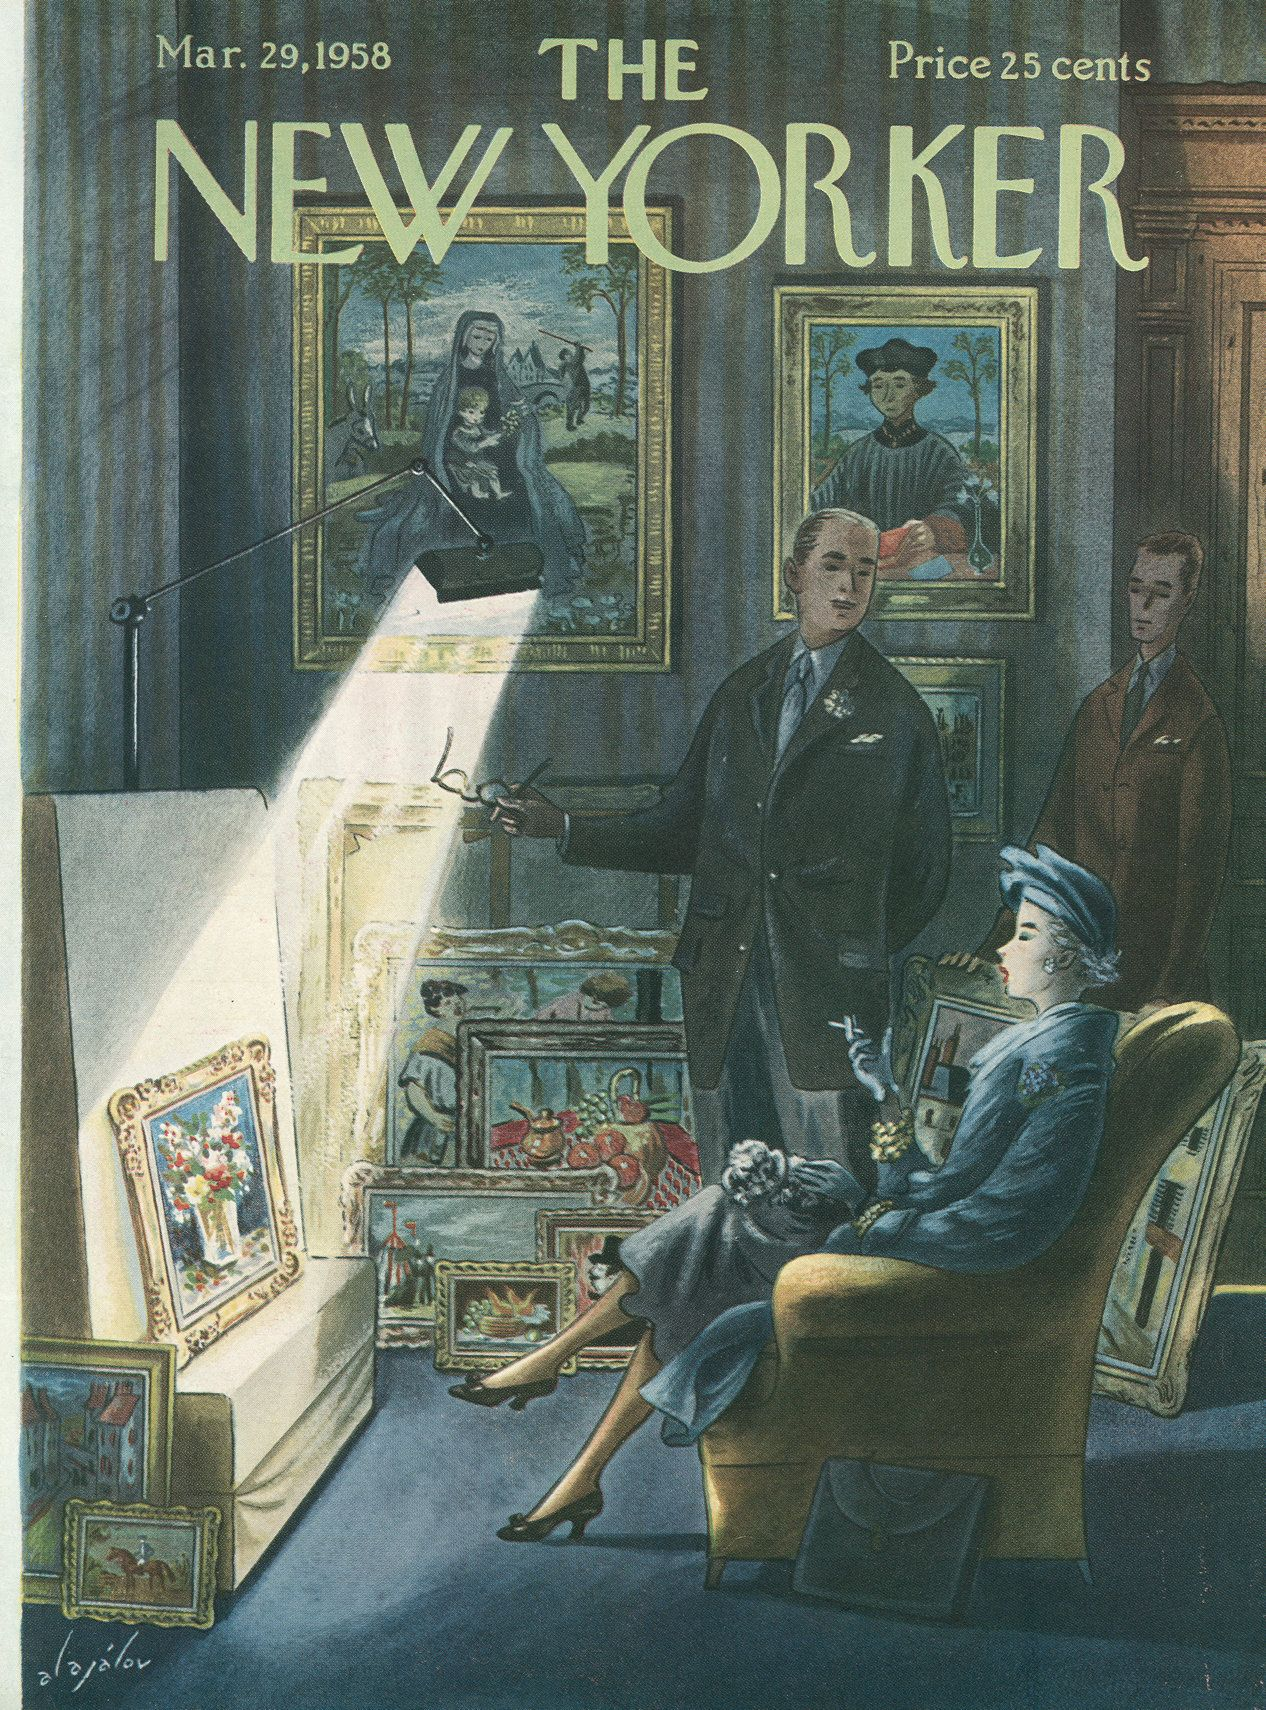 The New Yorker - Saturday, March 29, 1958 - Issue # 1728 - Vol. 34 - N° 6 - Cover by : Constantin Alajalov